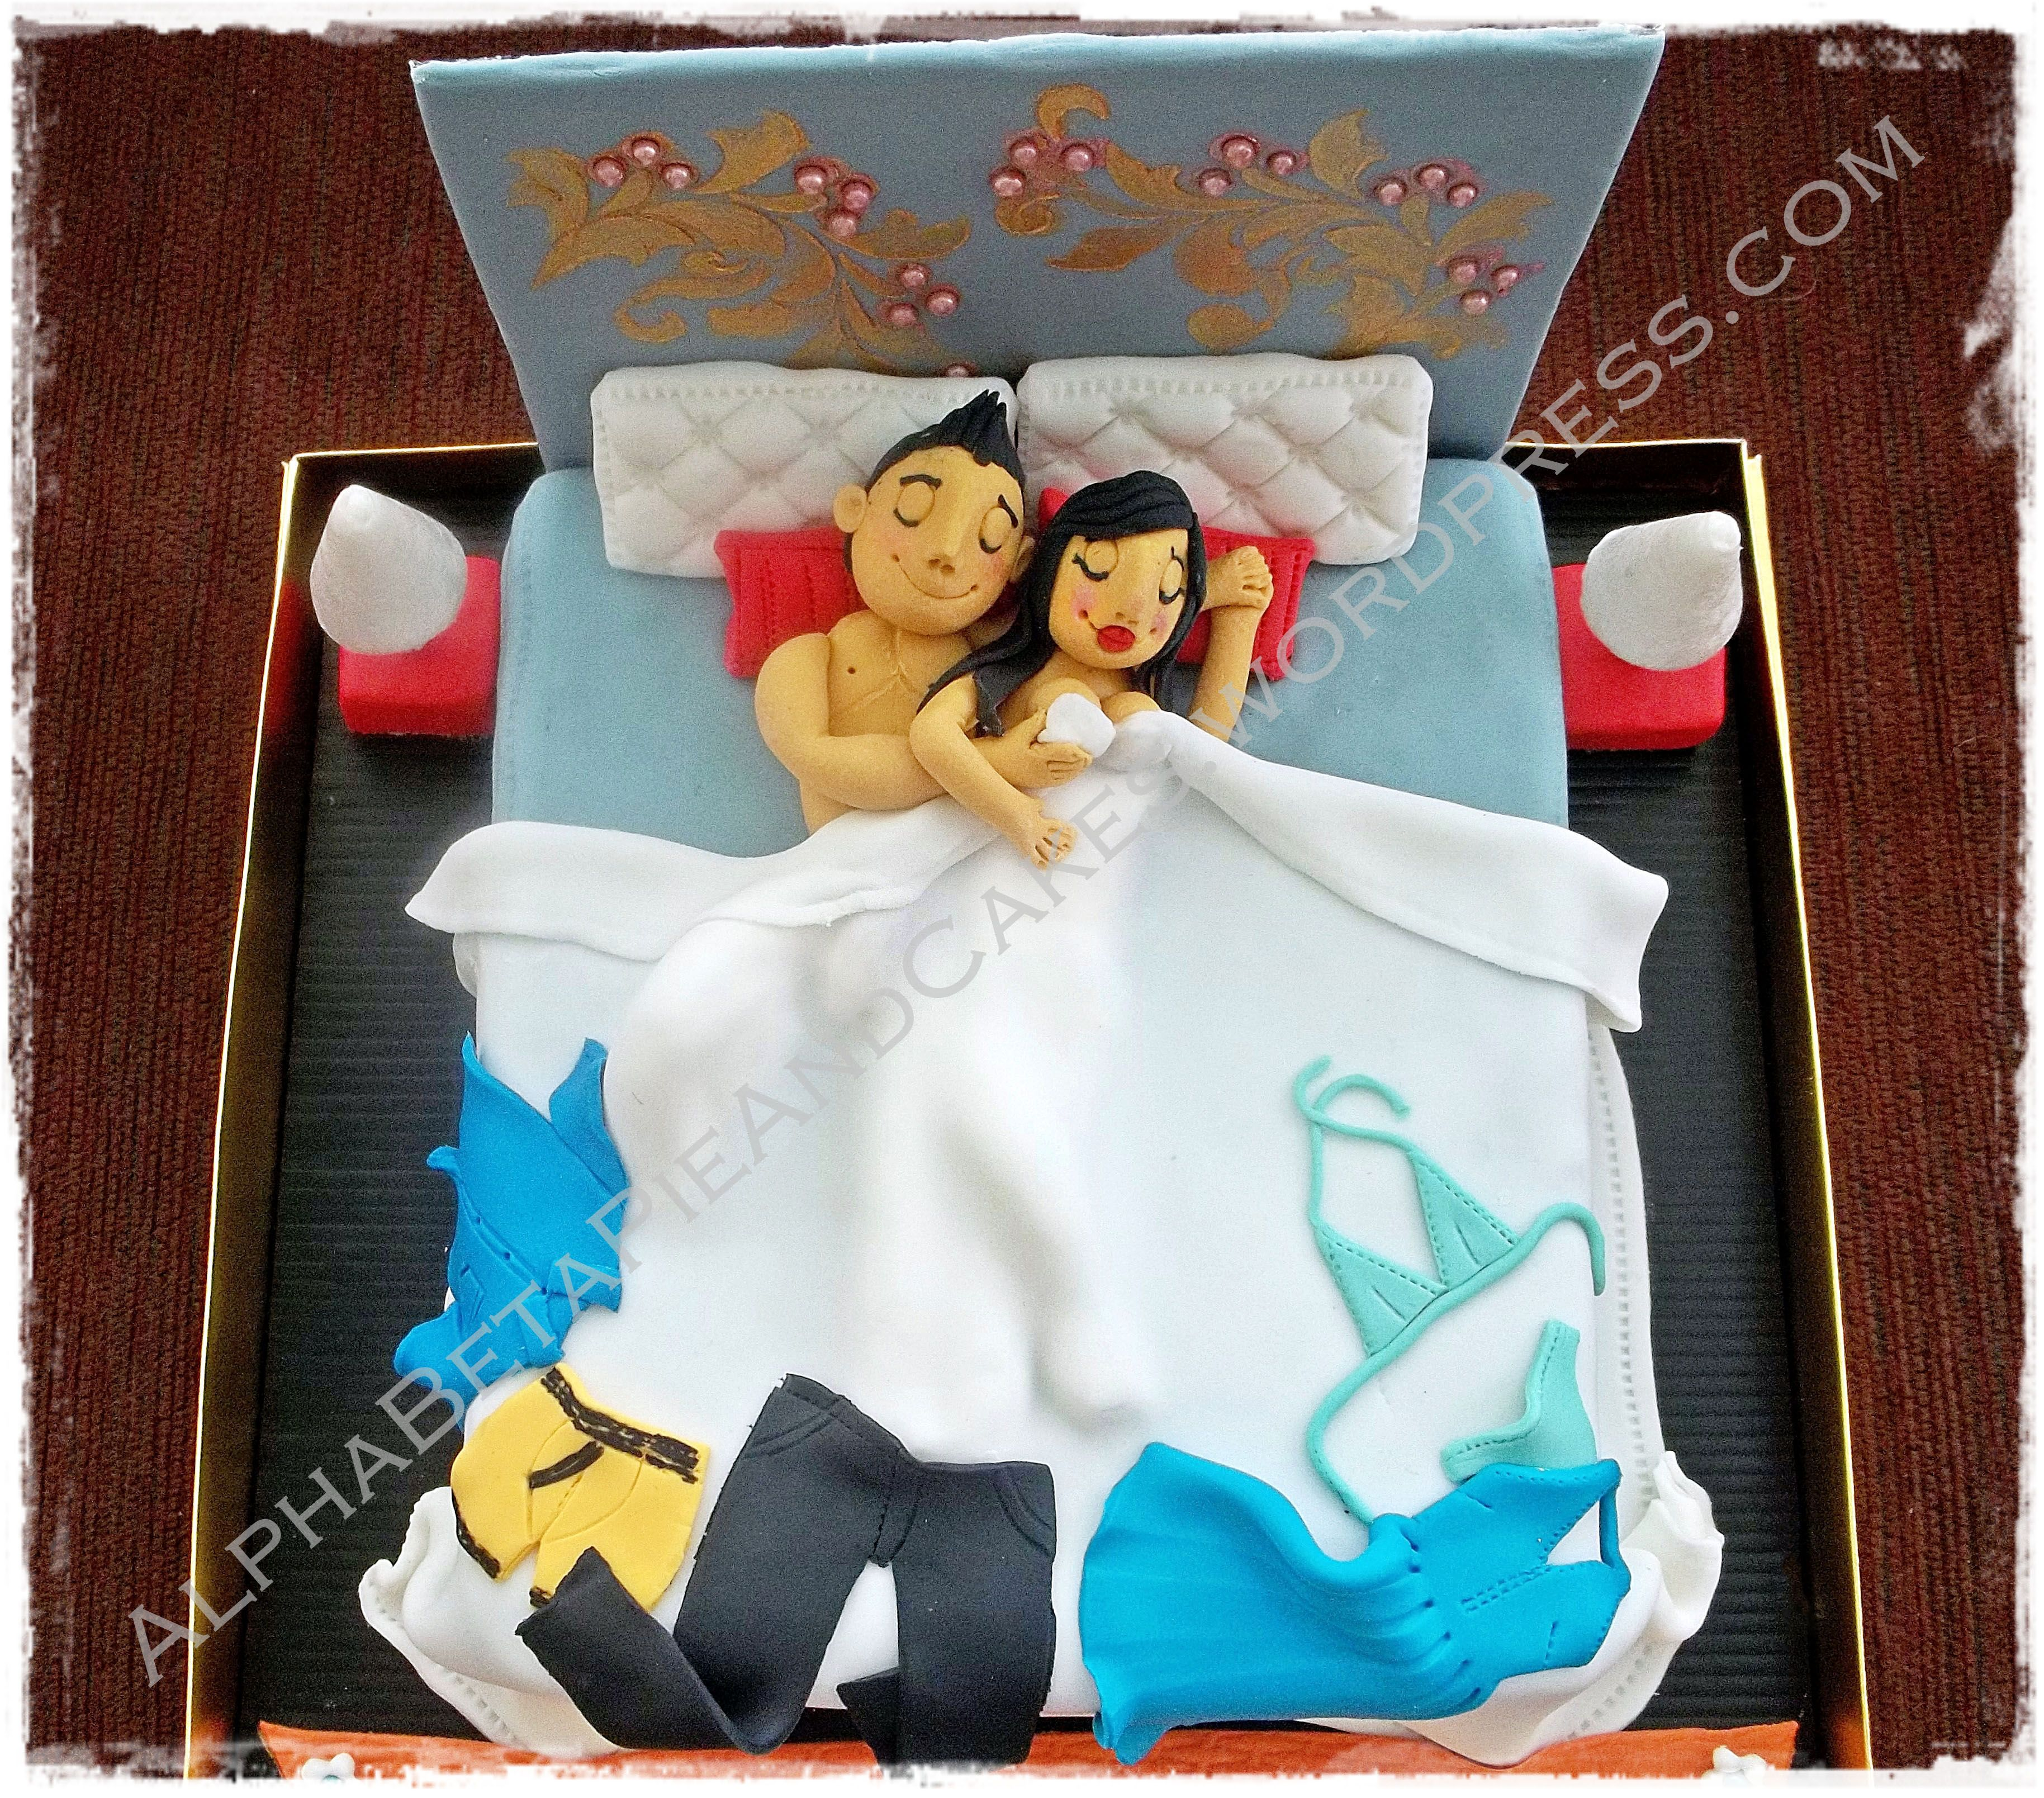 3d Bed Cake Idea Golden Girl On The Bed James Bond Movie Bed